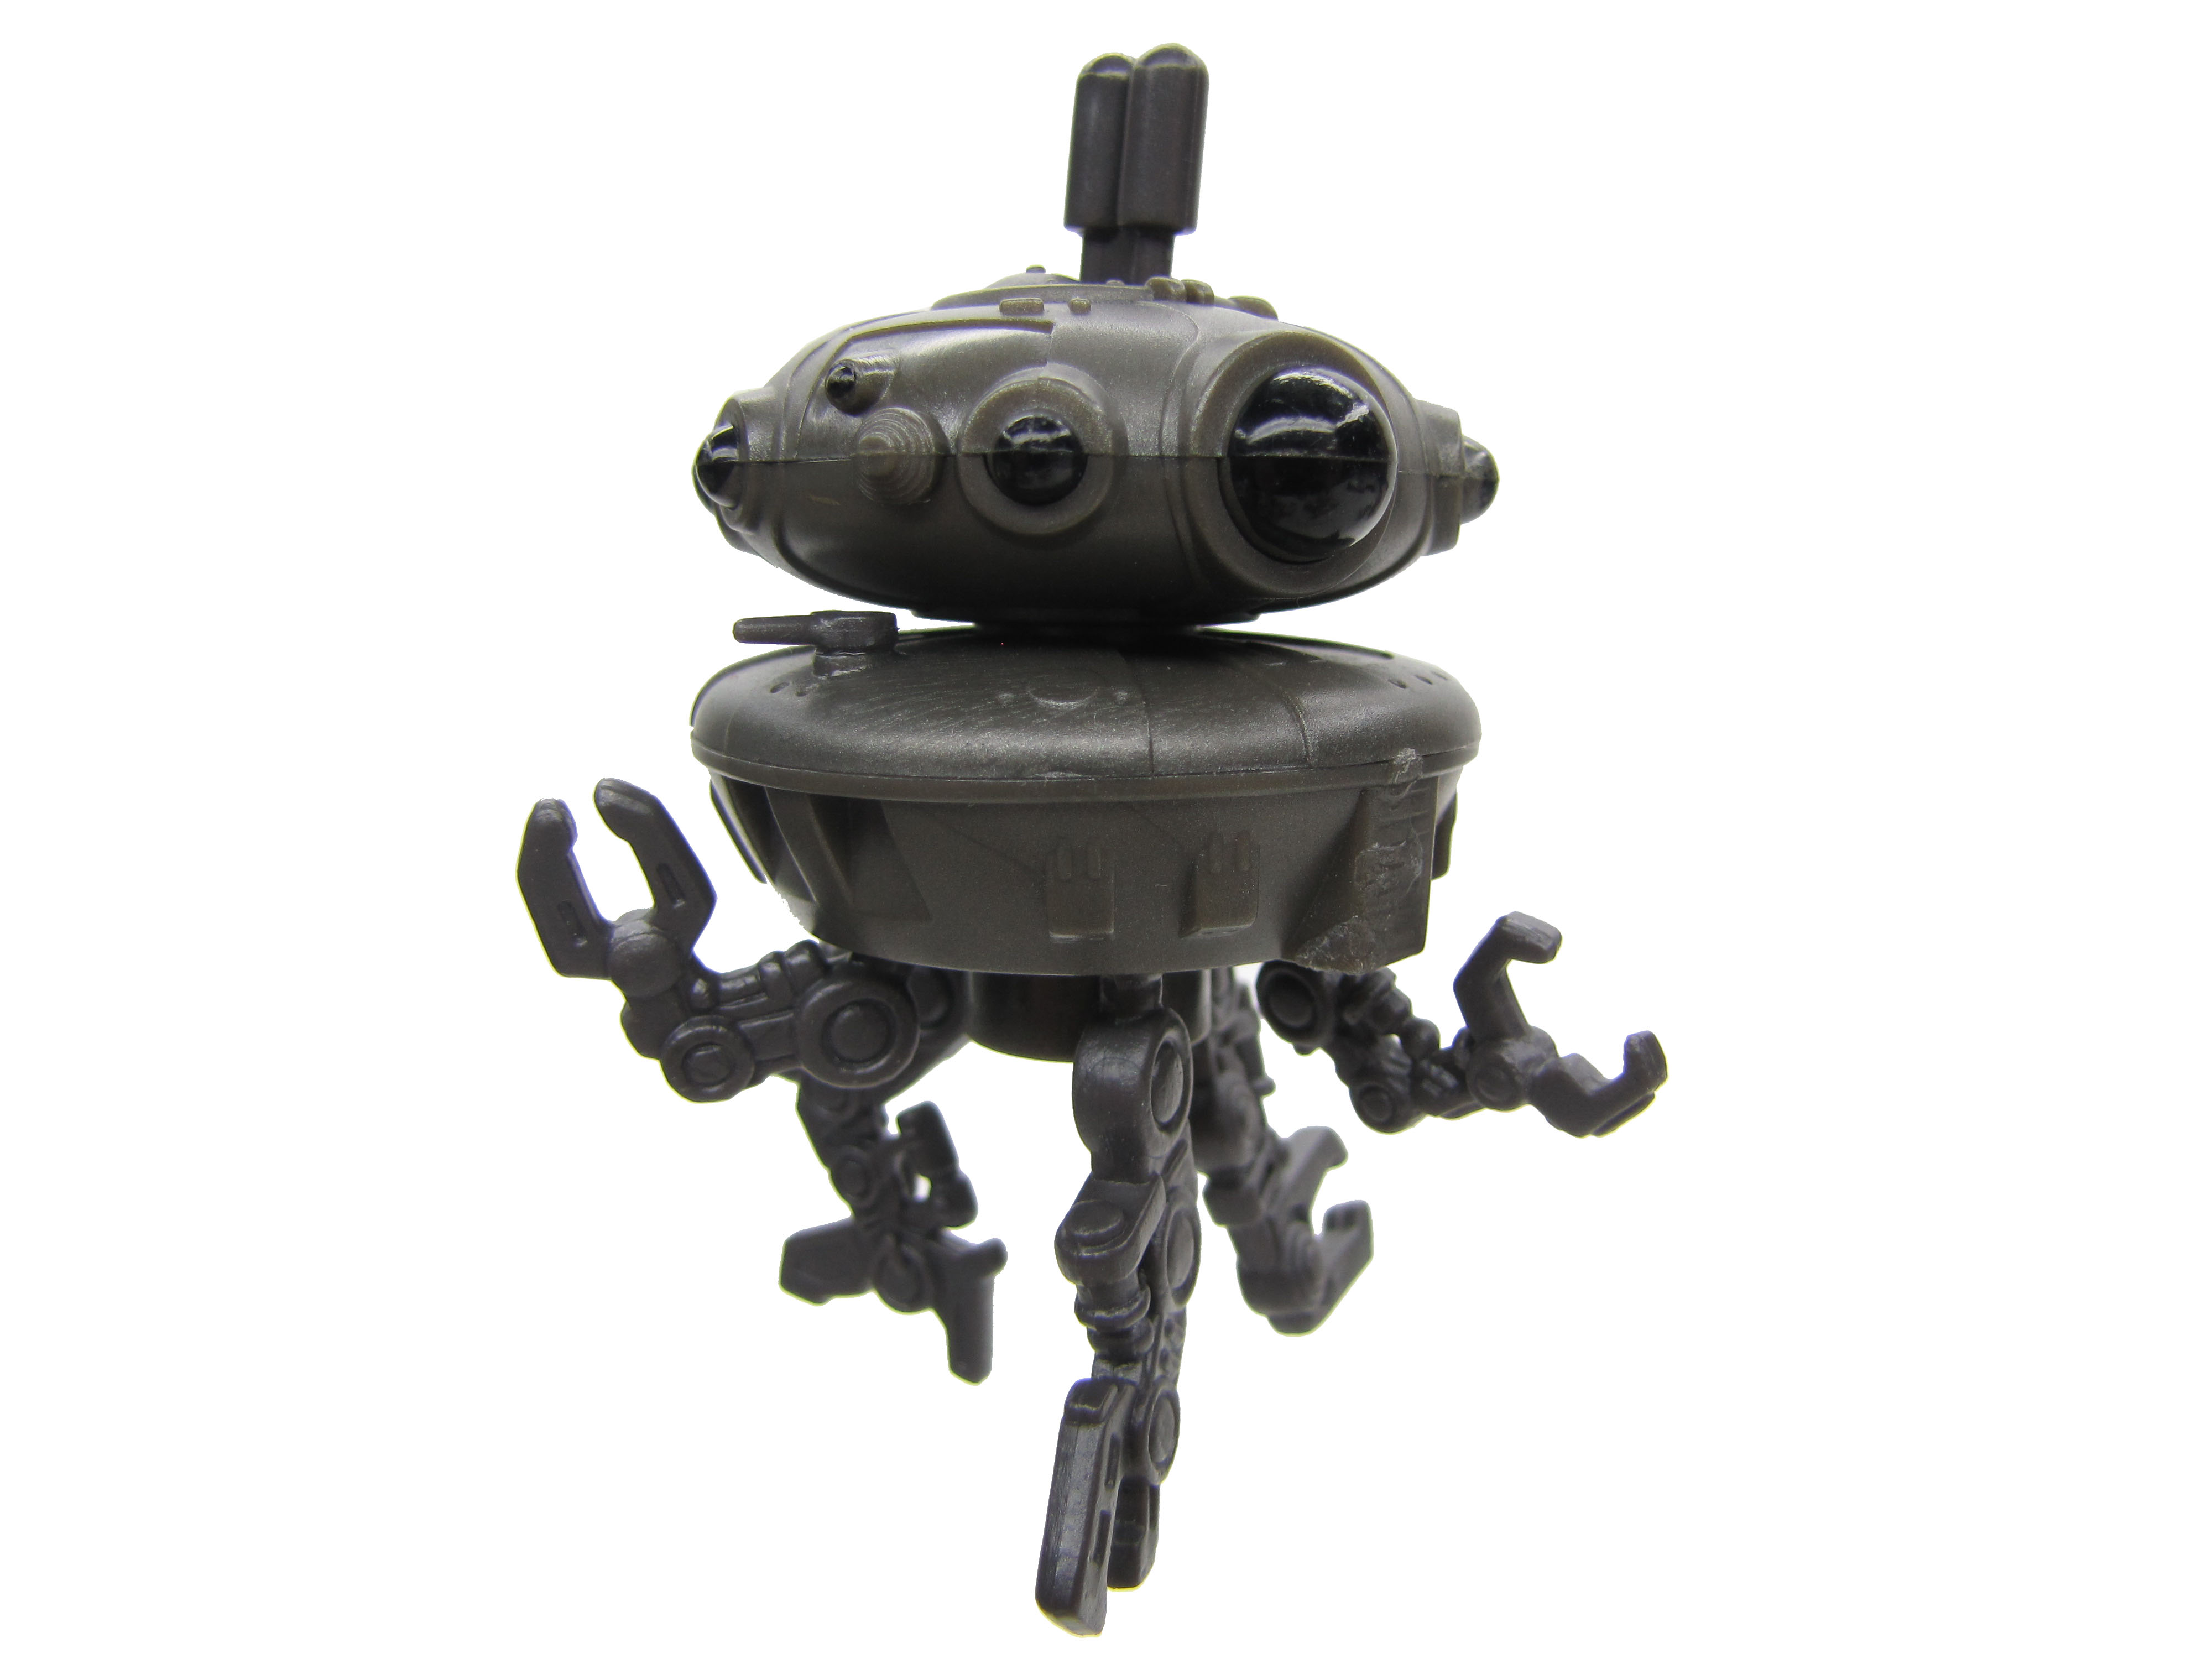 Star Wars Galactic Heroes HOTH SNOWSPEEDER ASSAULT PROBE DROID